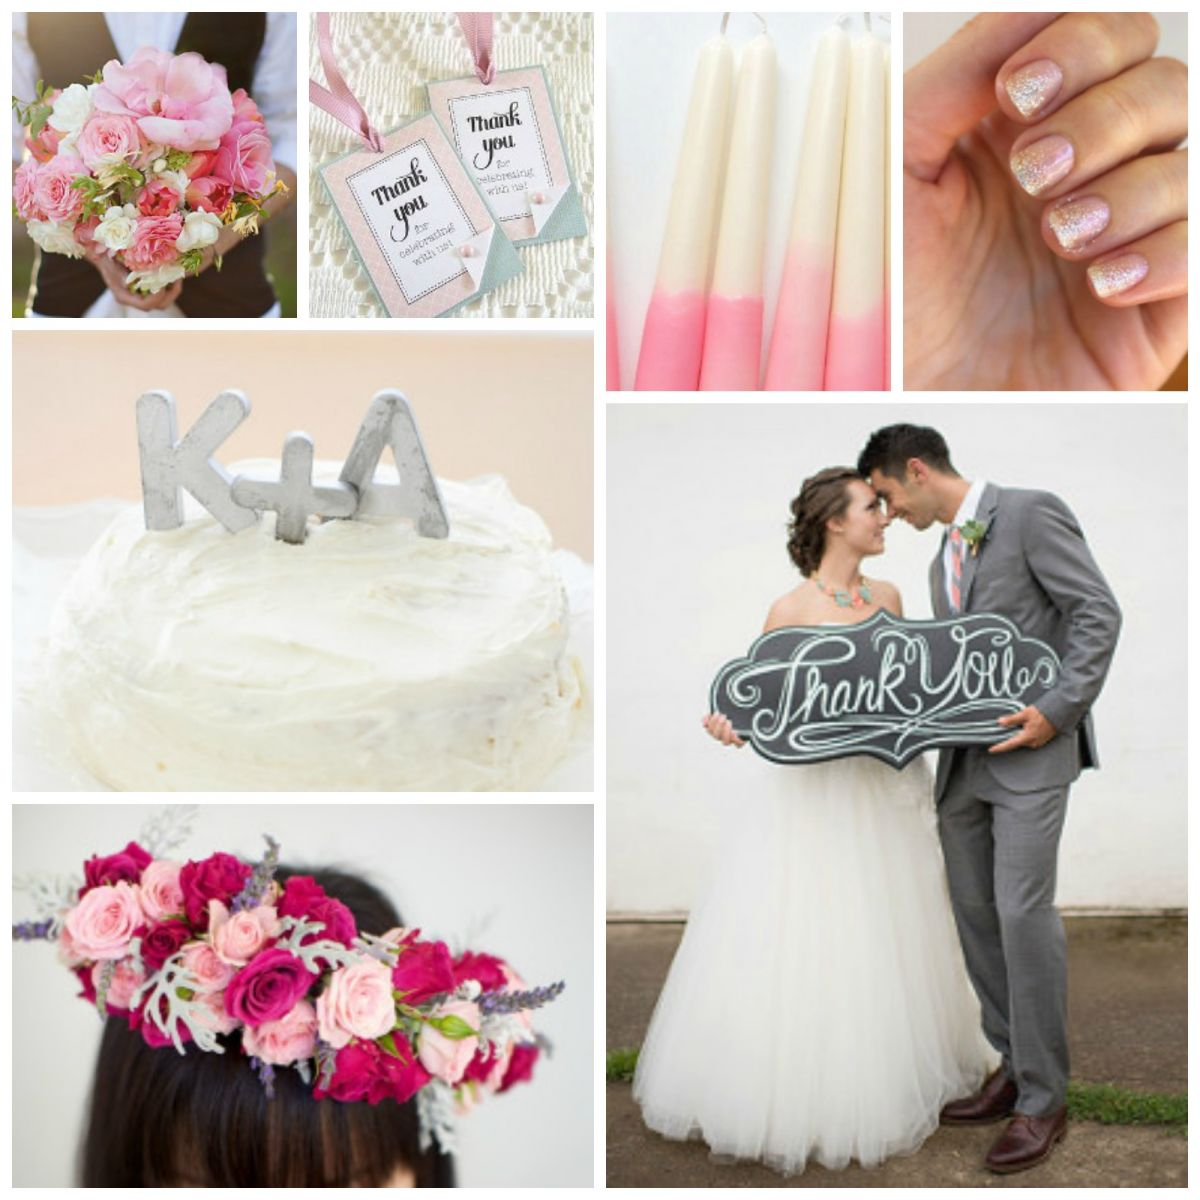 Wedding Color Schemes: Pink and Grey | AllFreeDIYWeddings.com